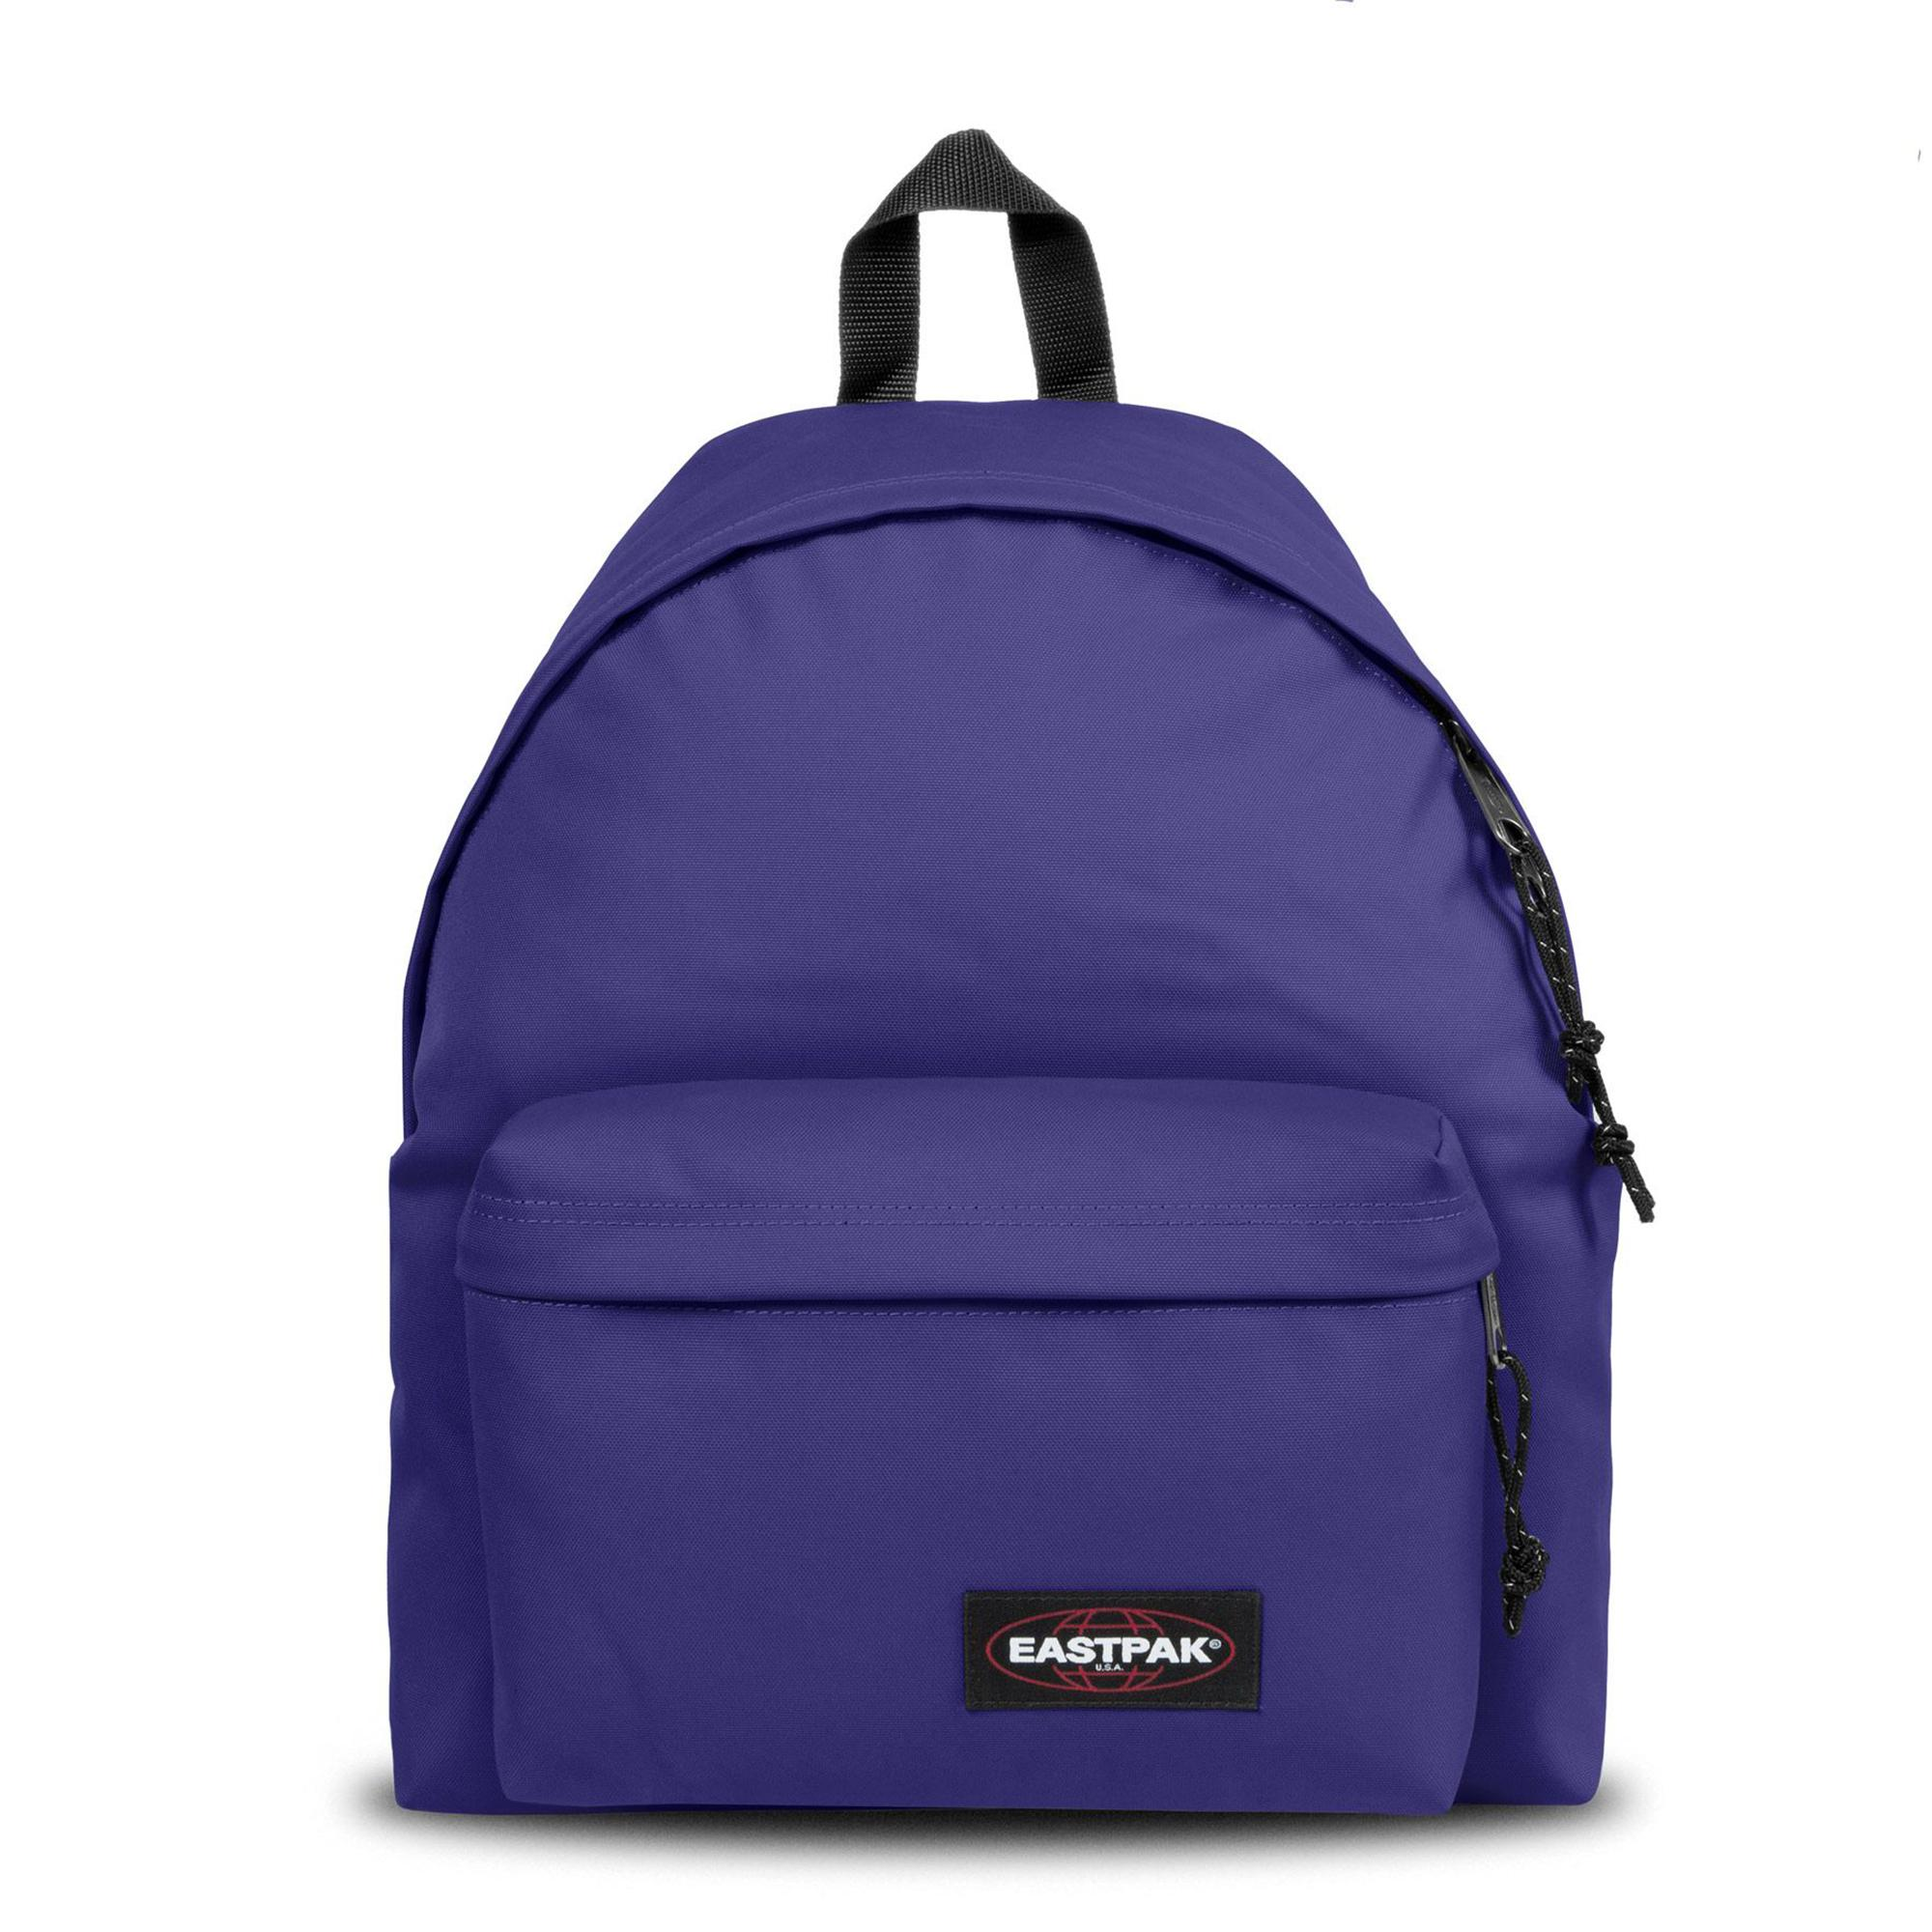 Eastpak Padded Pak'r Amethyst purple